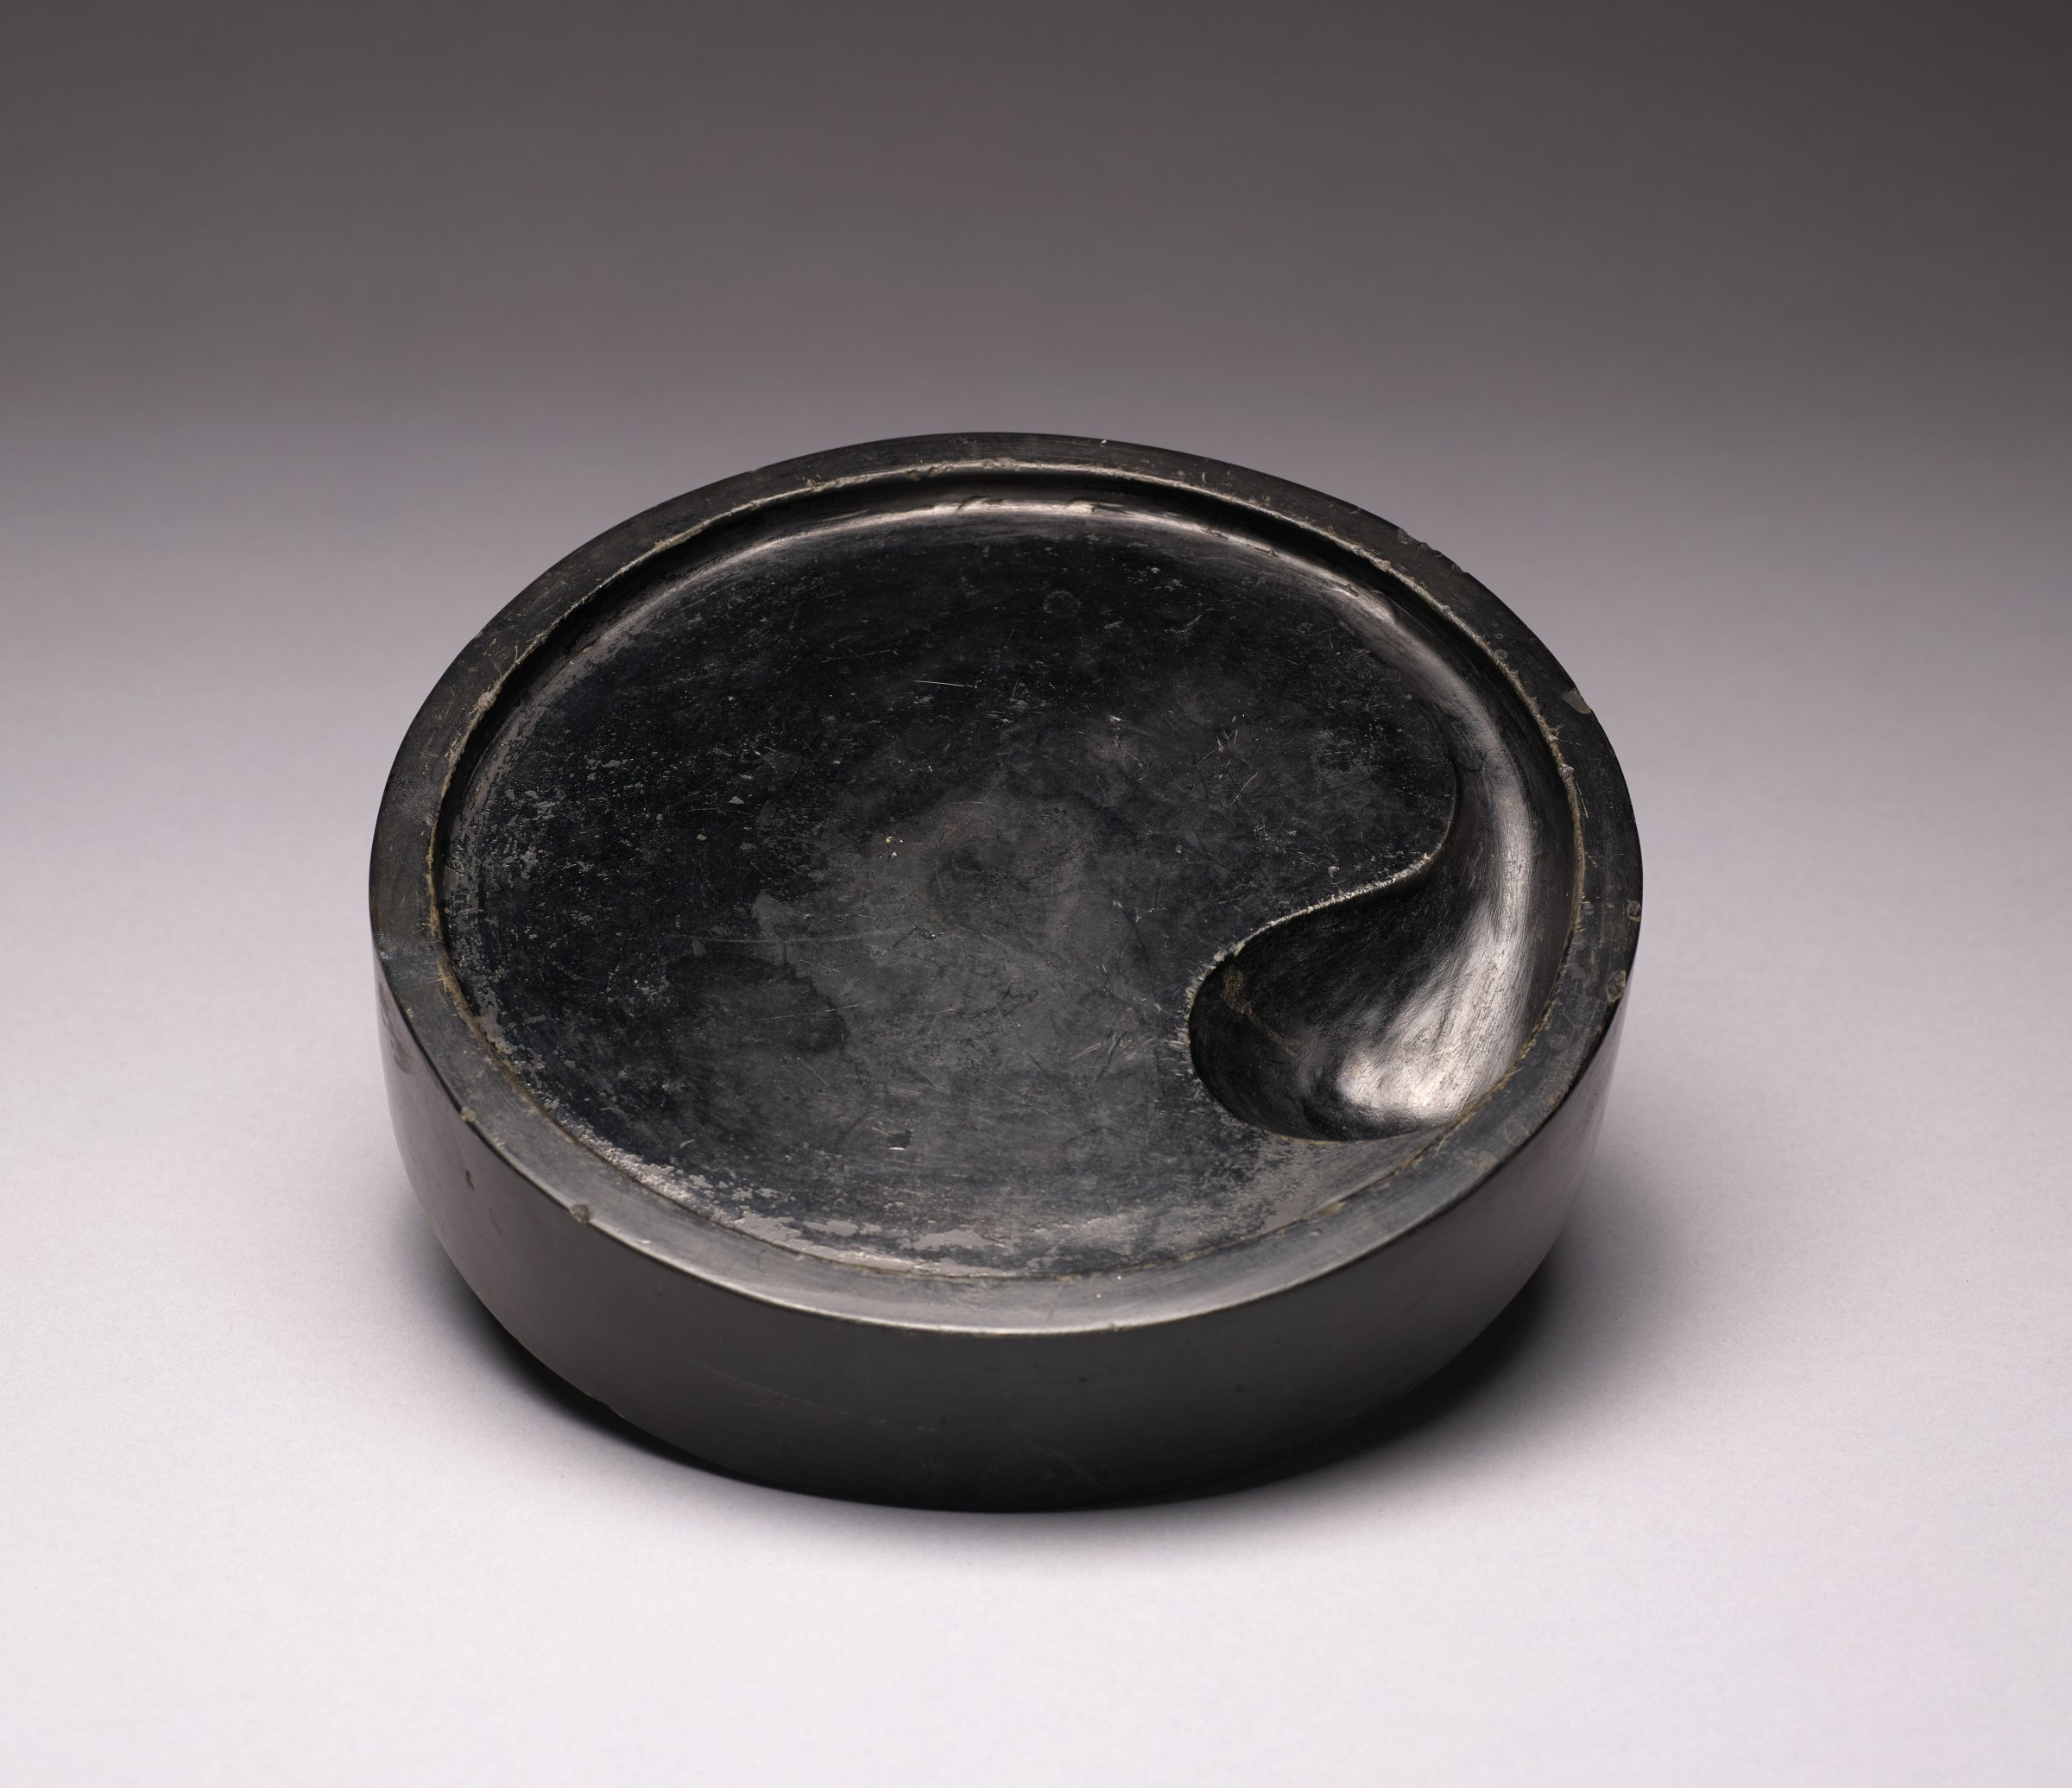 A scholar's ink stone in the shape of the Yin/Yang